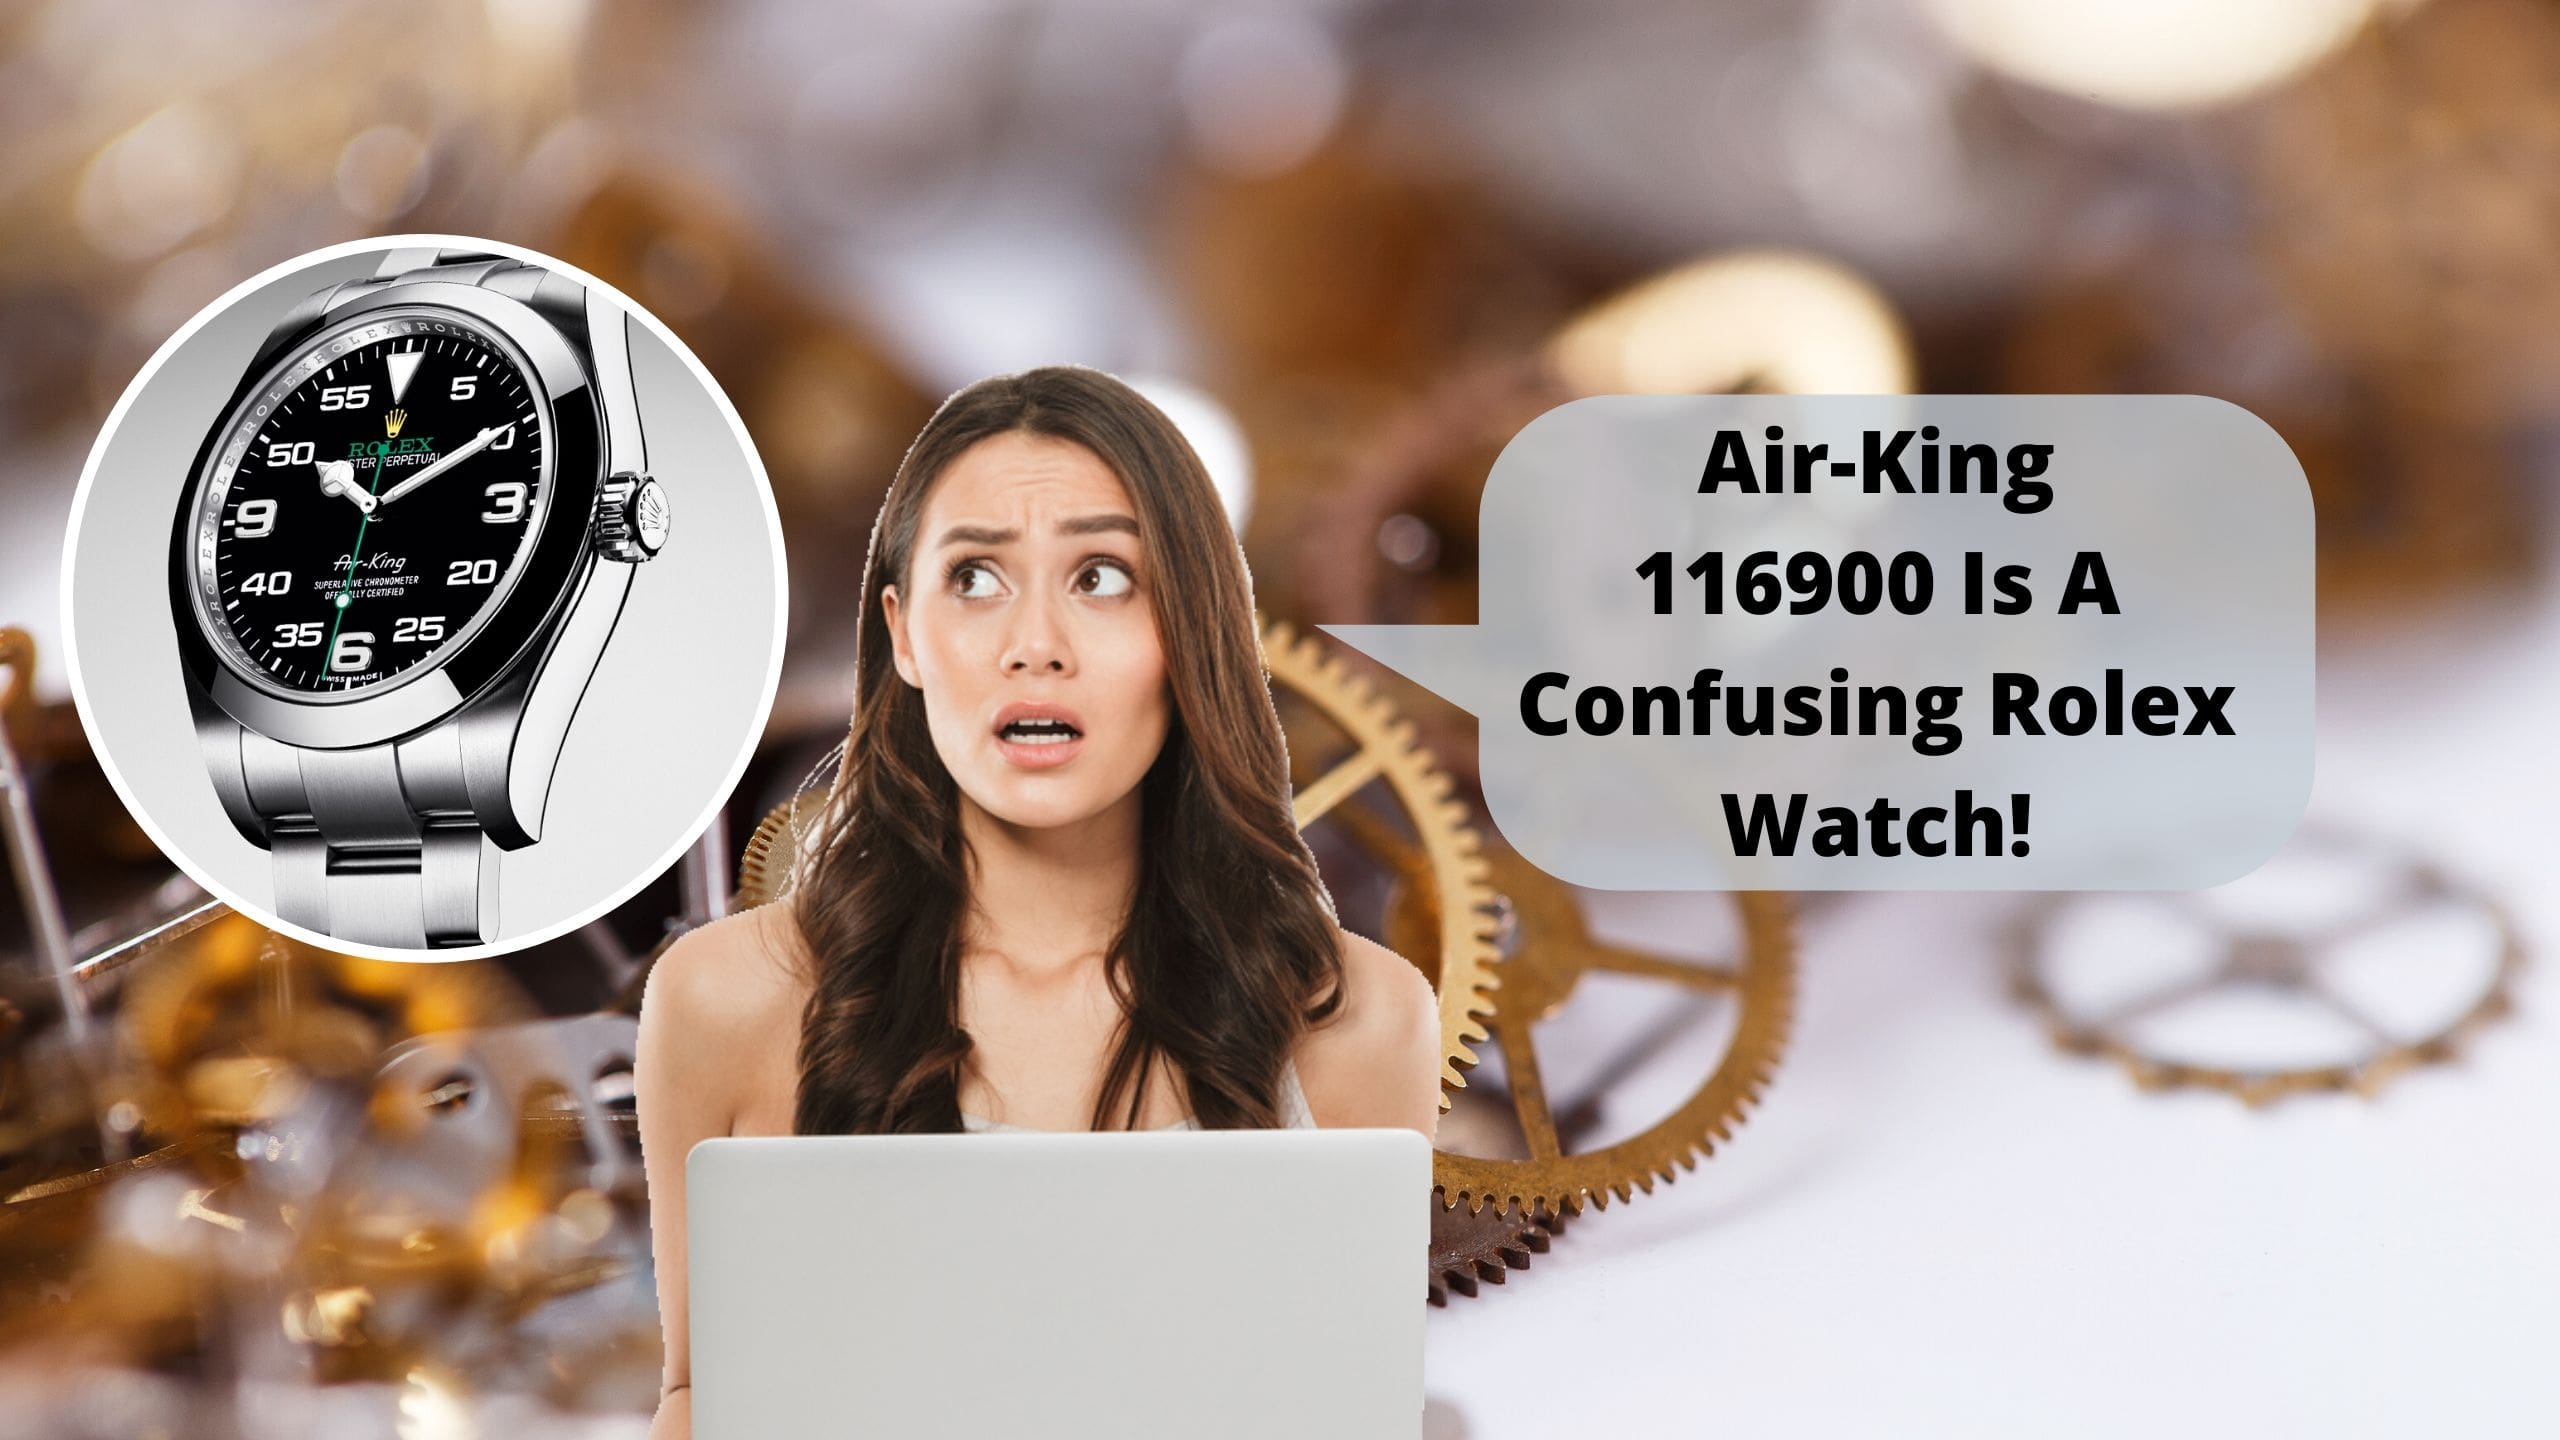 Why Air King-116900 is A Confusing Rolex Watch